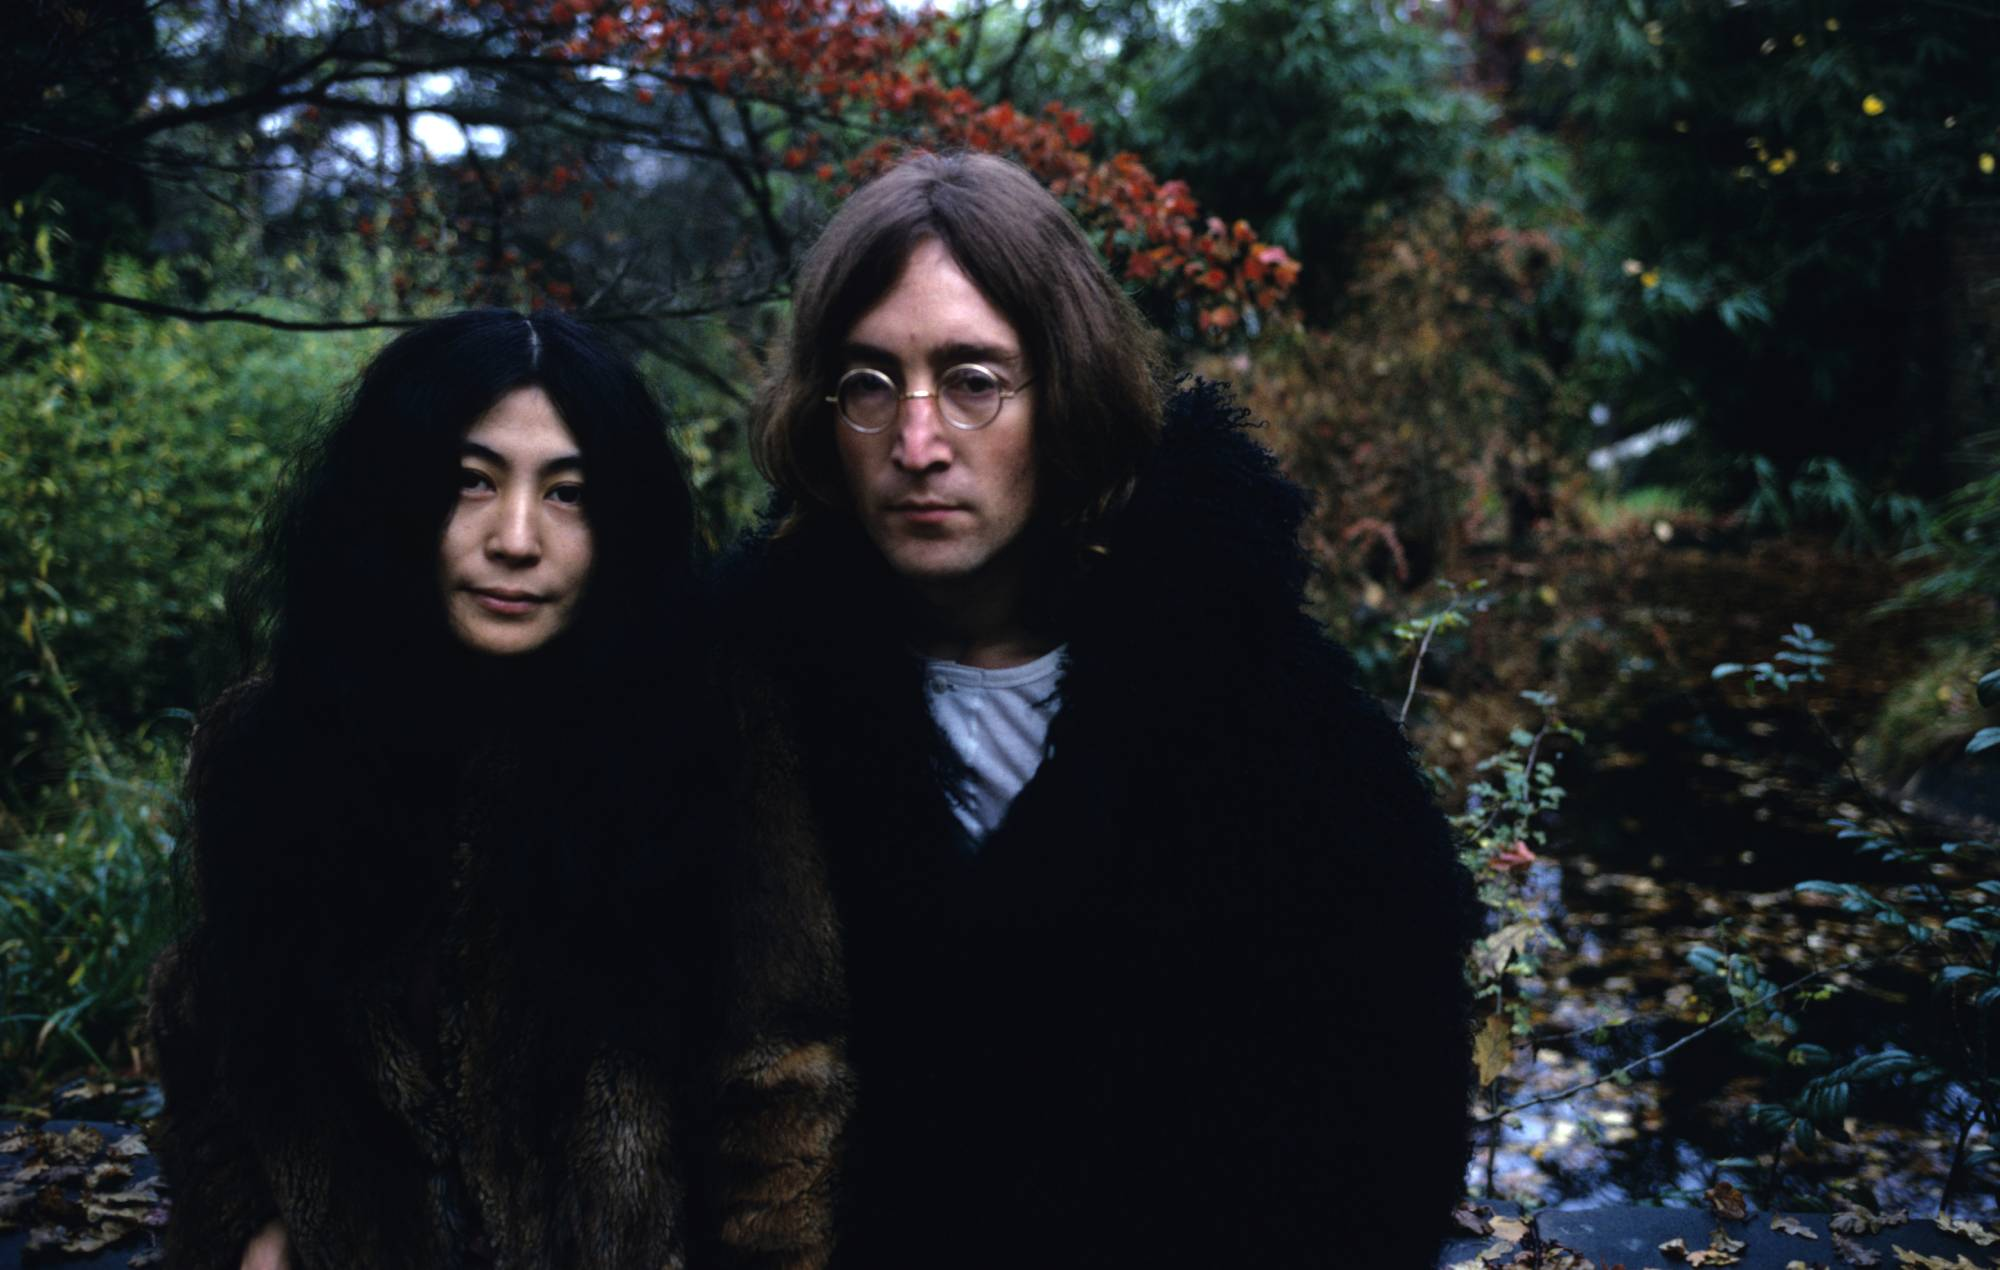 Yoko Ono and Janie Hendrix help launch new music channel Coda Collection